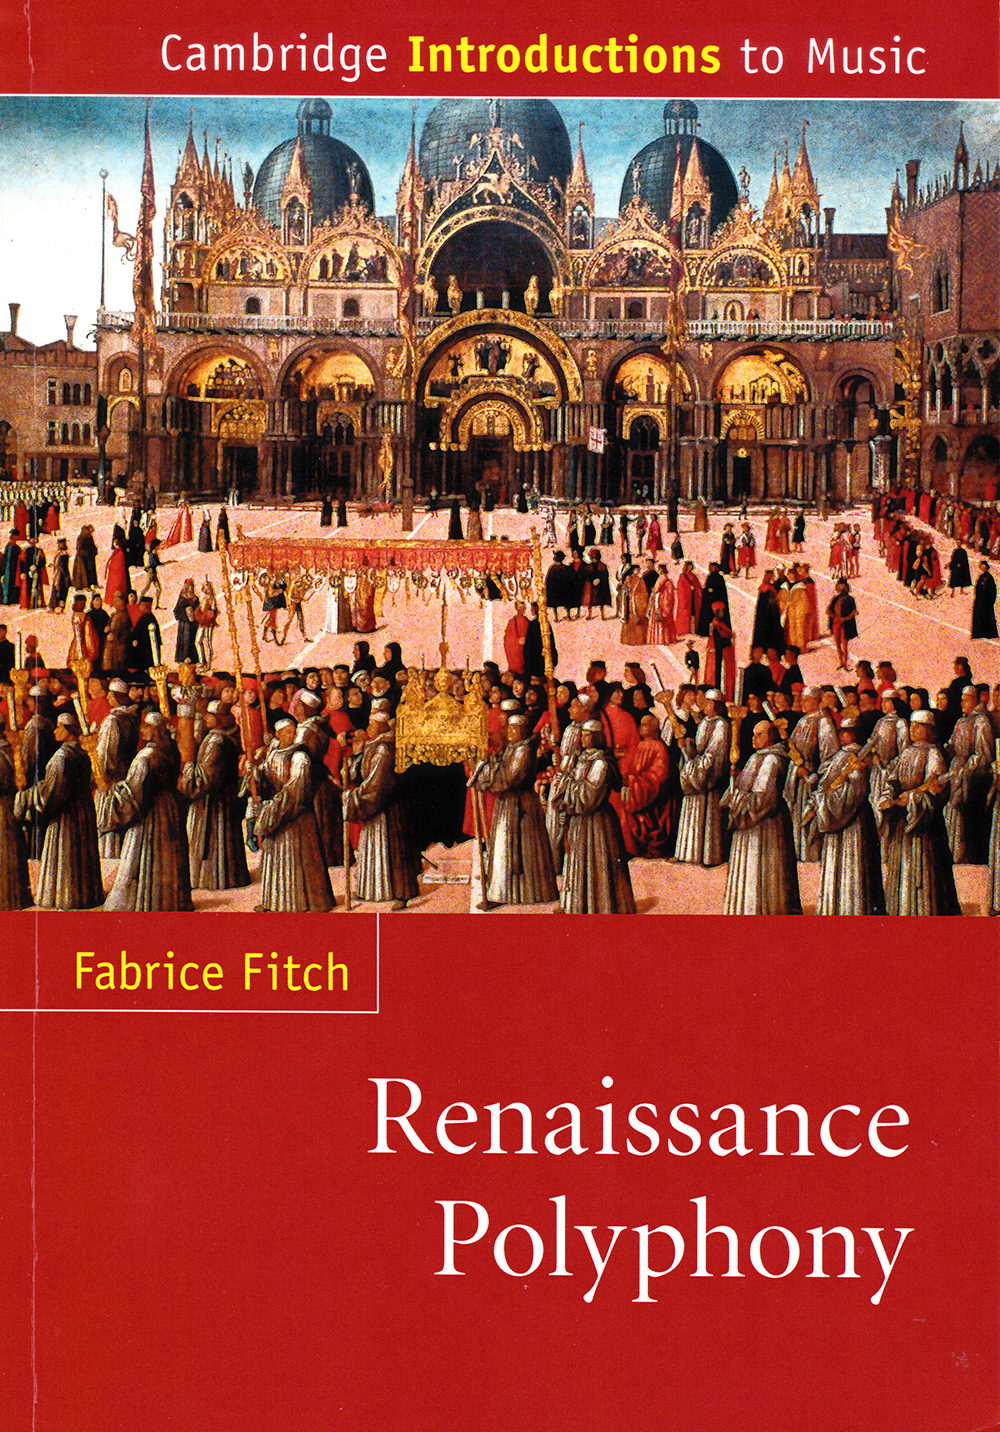 Renaissance Polyphony di Fabrice Fitch